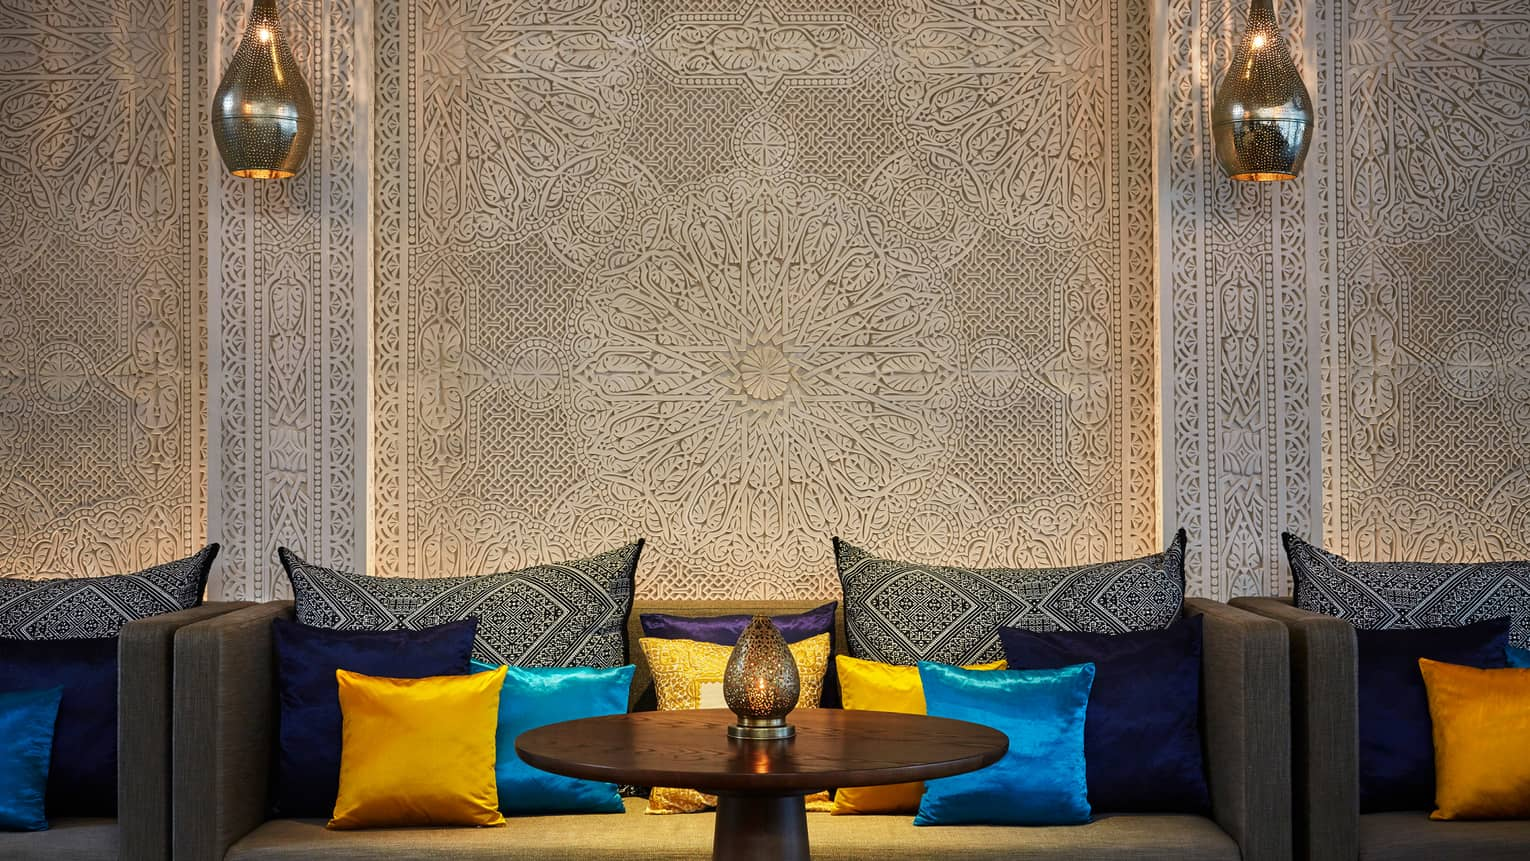 Decorative white wall, sofa with blue and yellow silk pillows, Moroccan lanterns